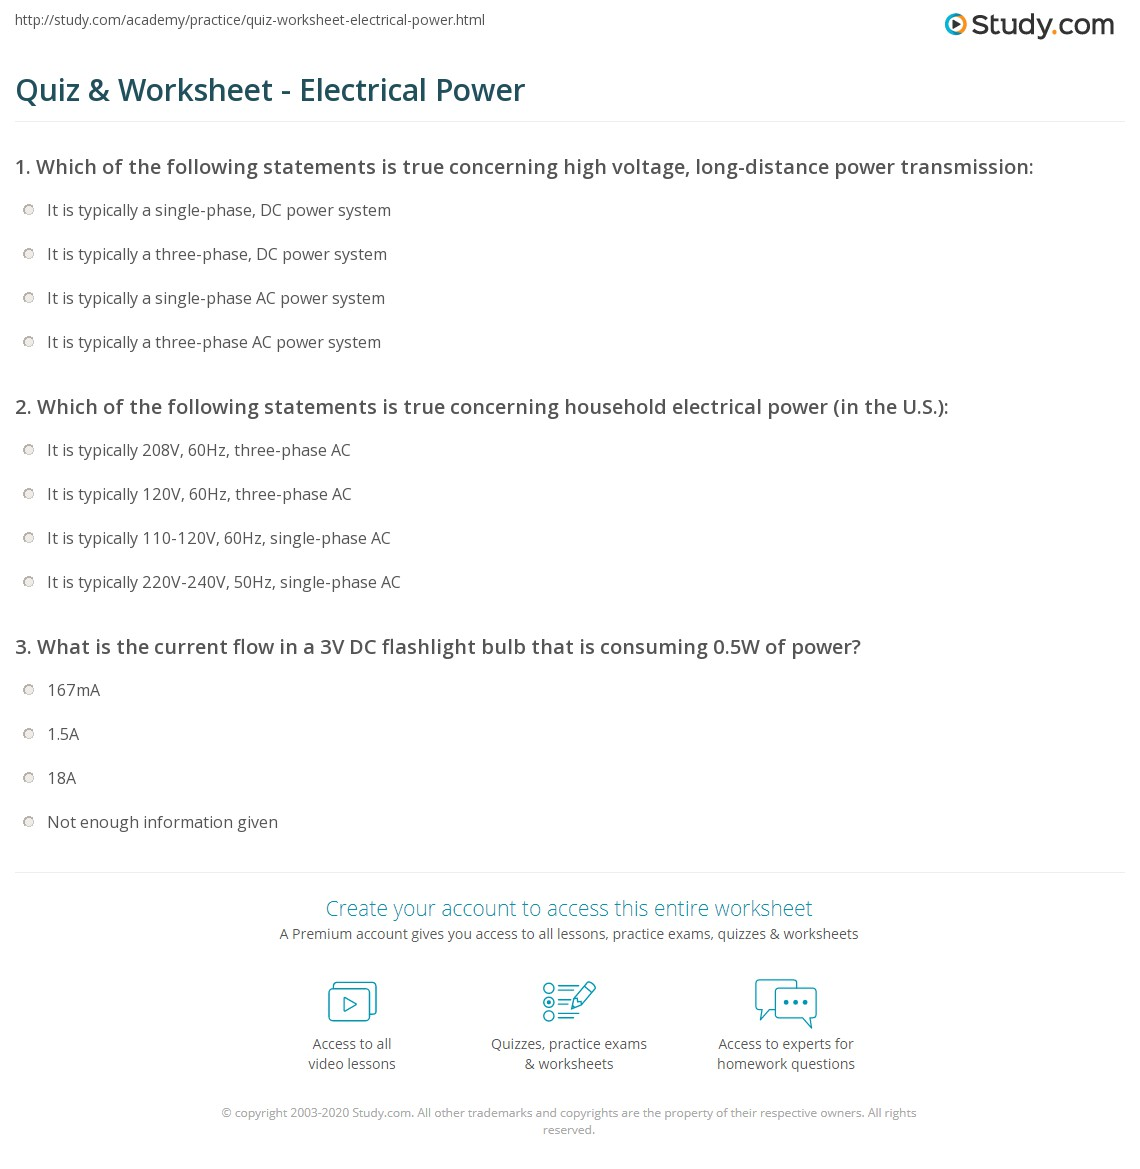 Quiz & Worksheet Electrical Power